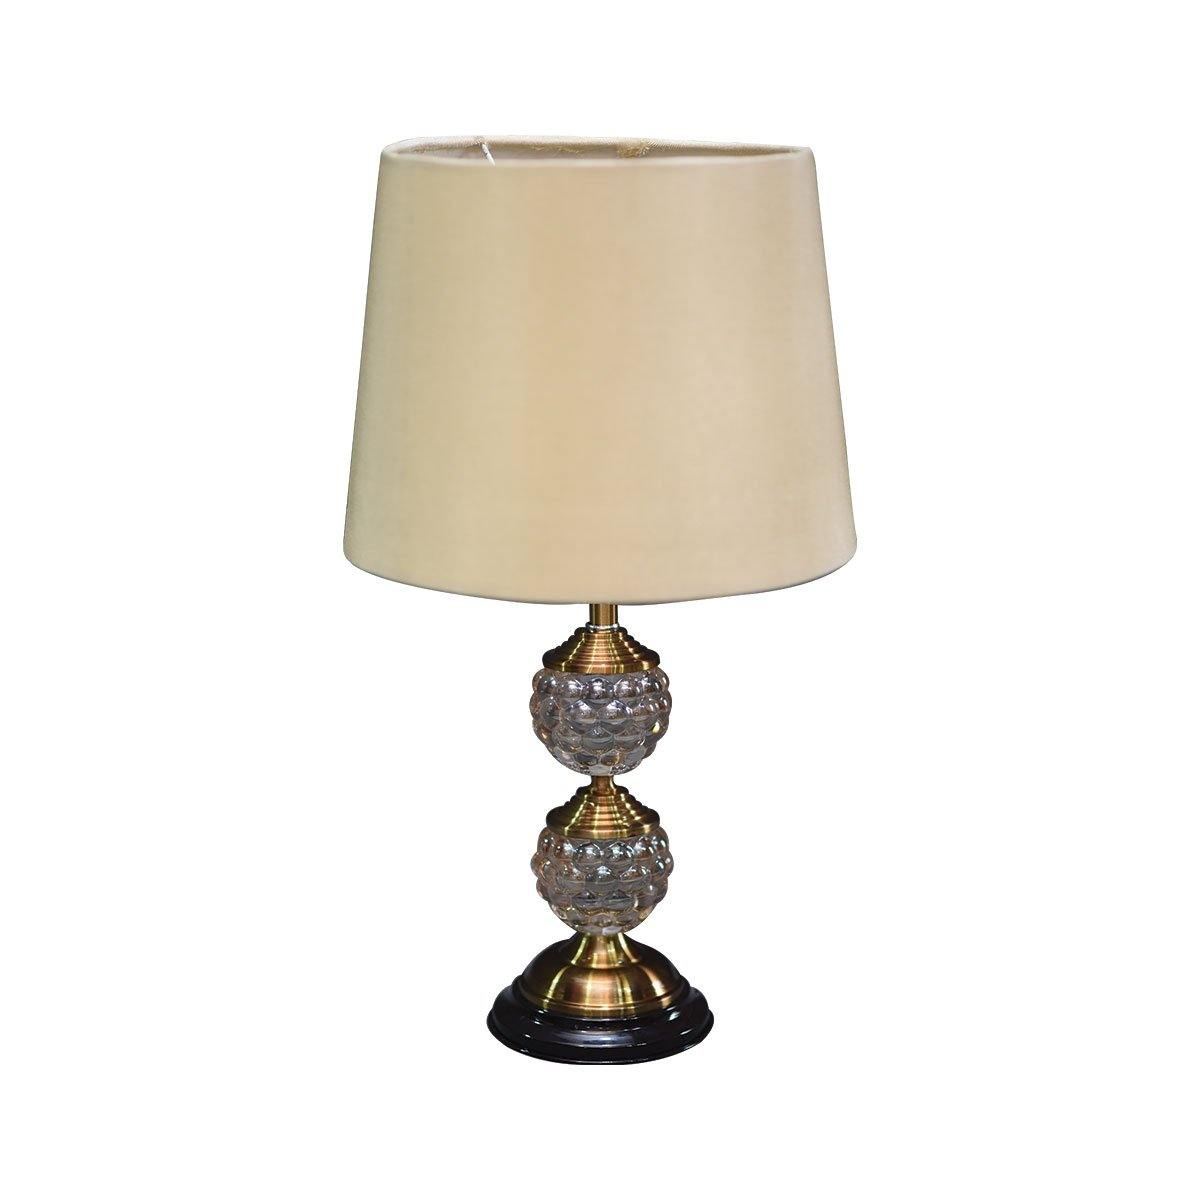 Golden Hampton Table Lamp